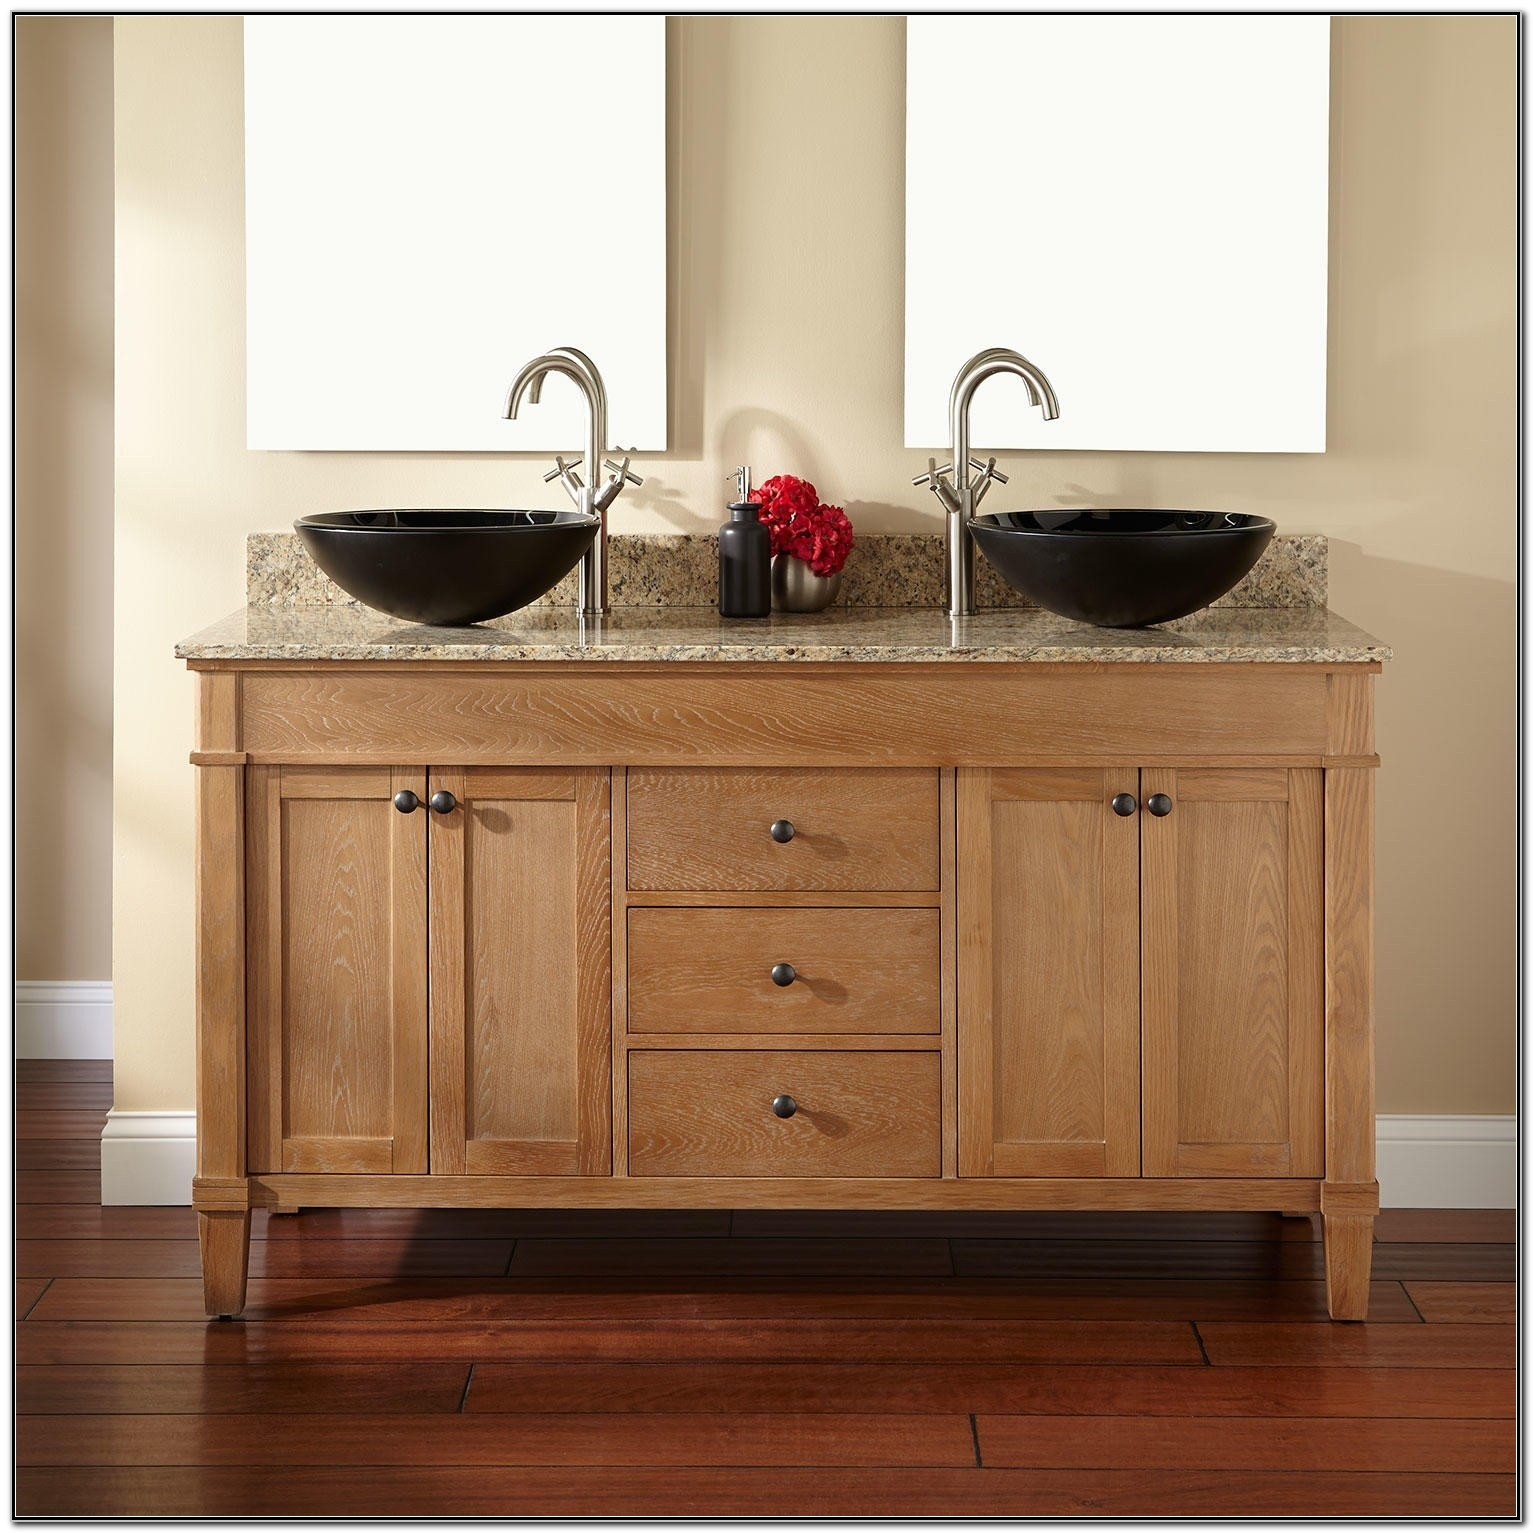 24 Inch Bathroom Vanity With Sink Canada